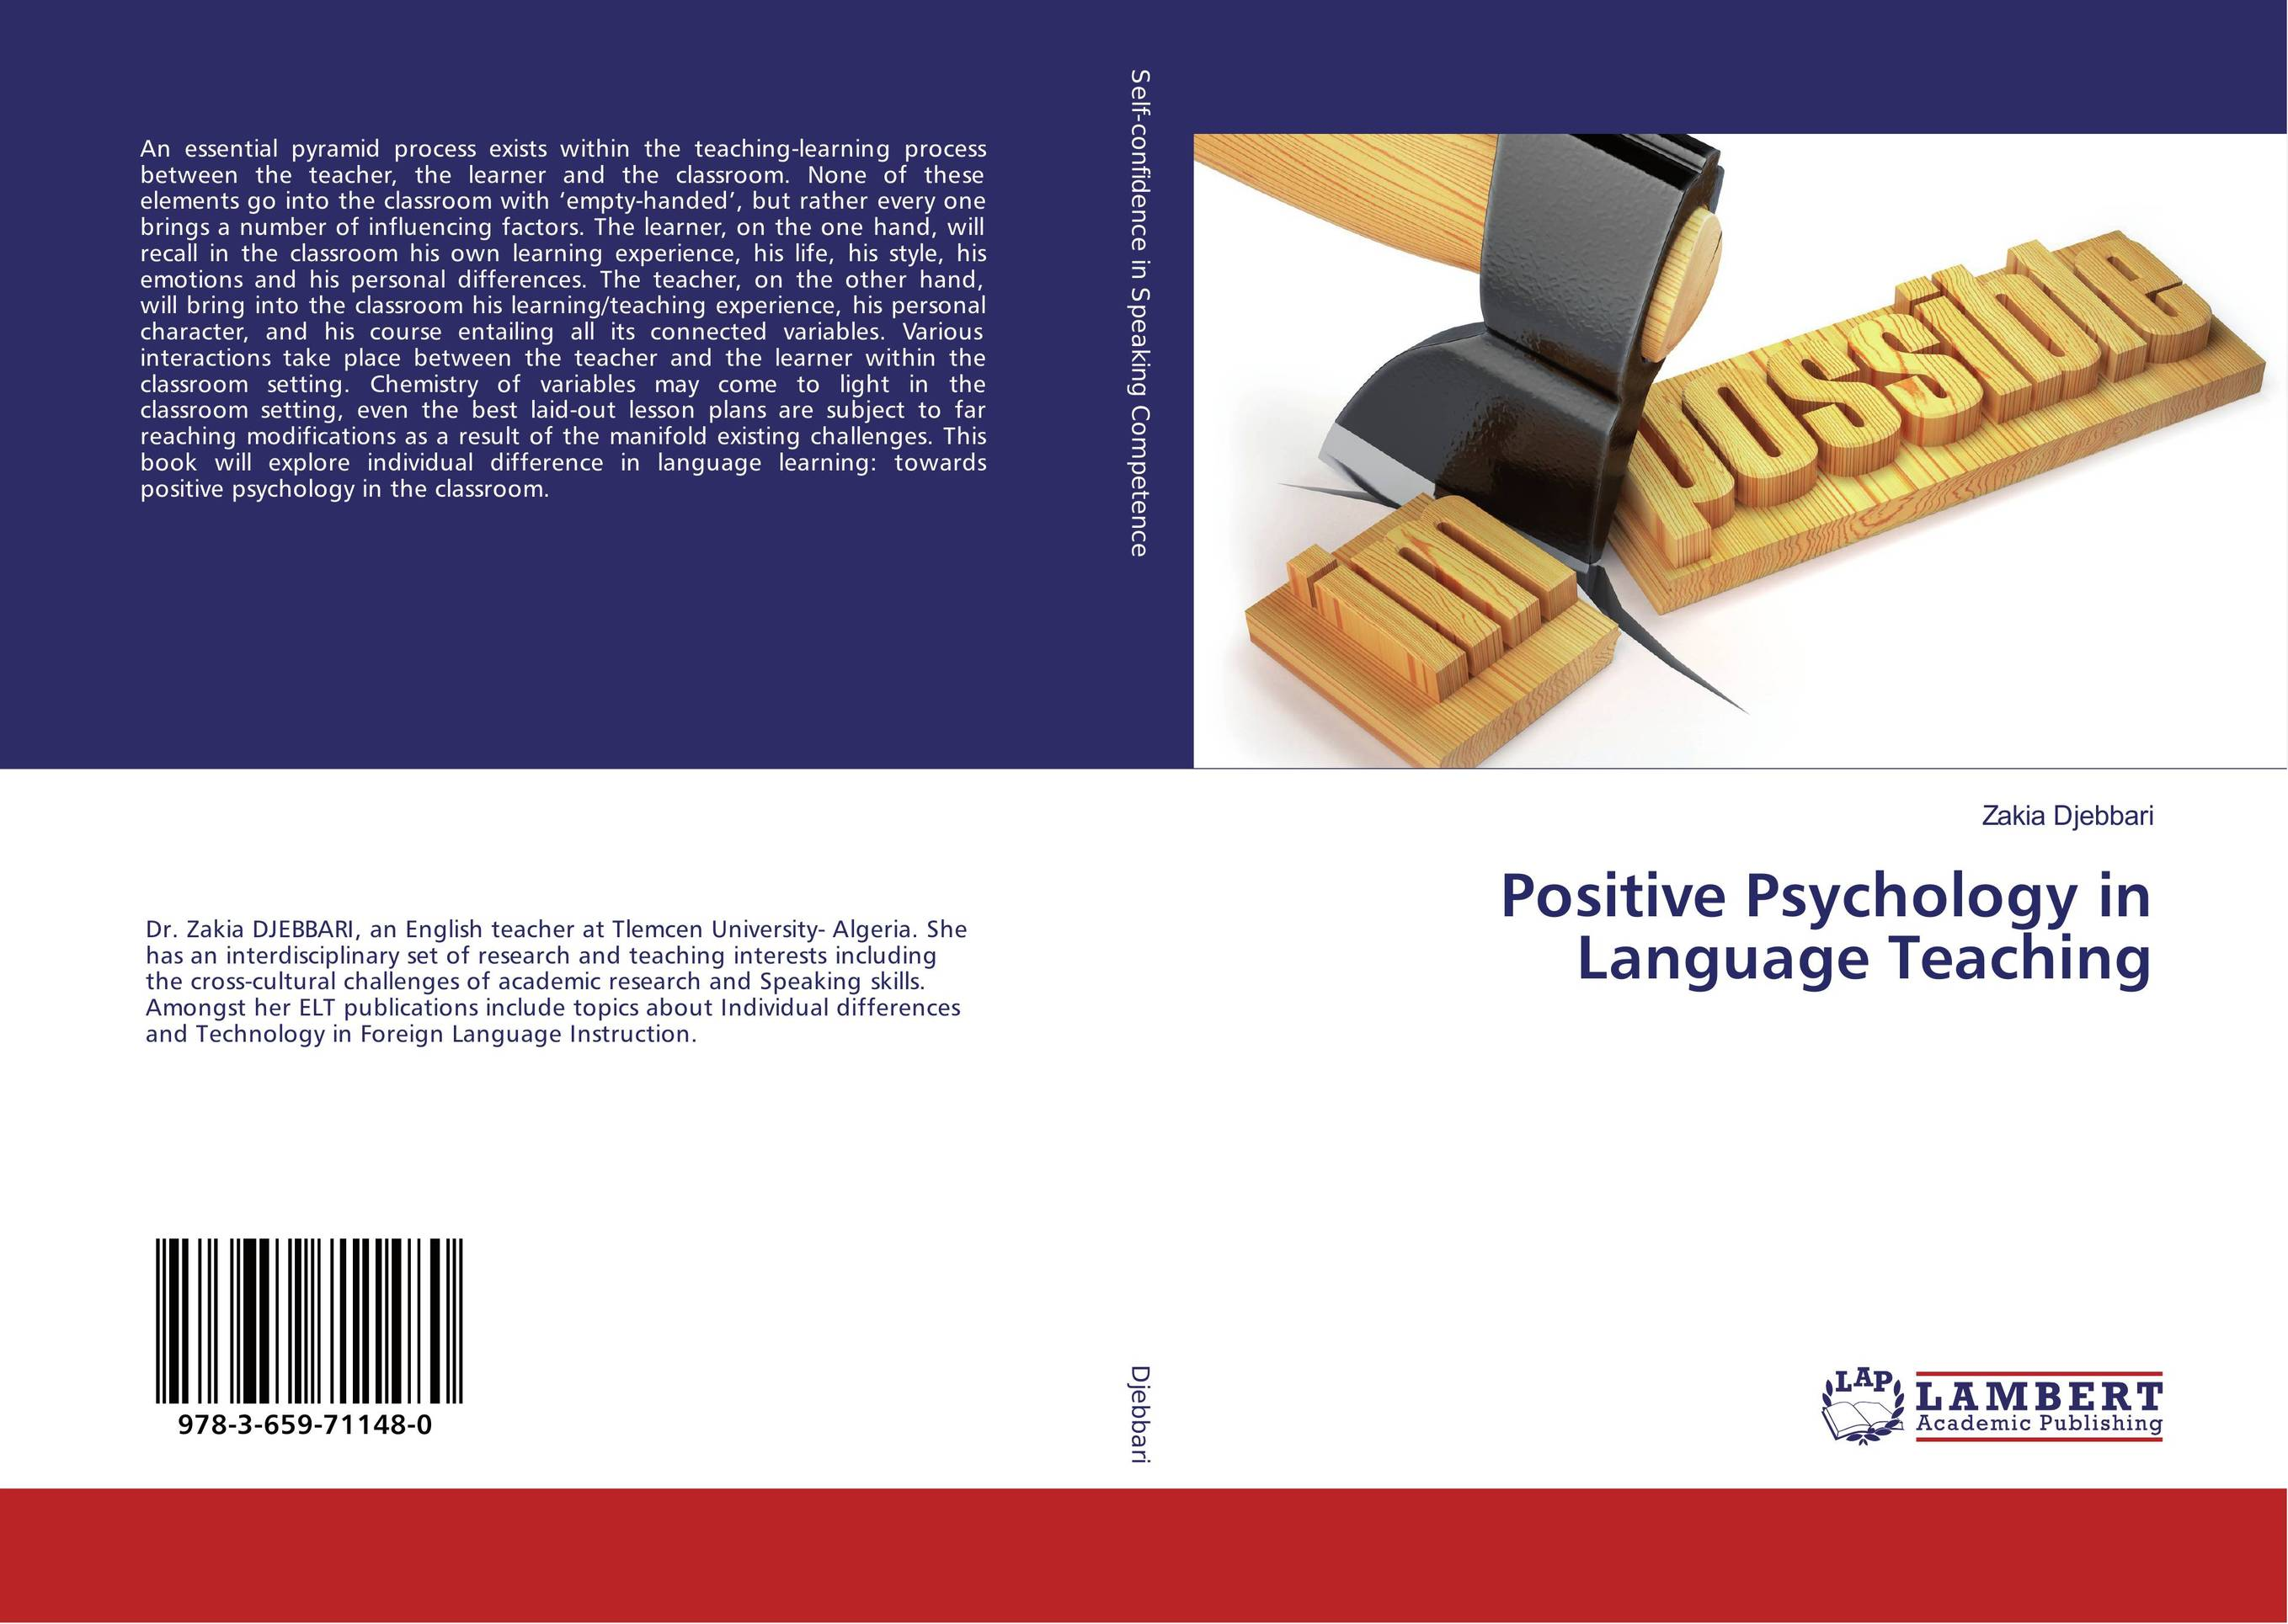 Positive Psychology in Language Teaching